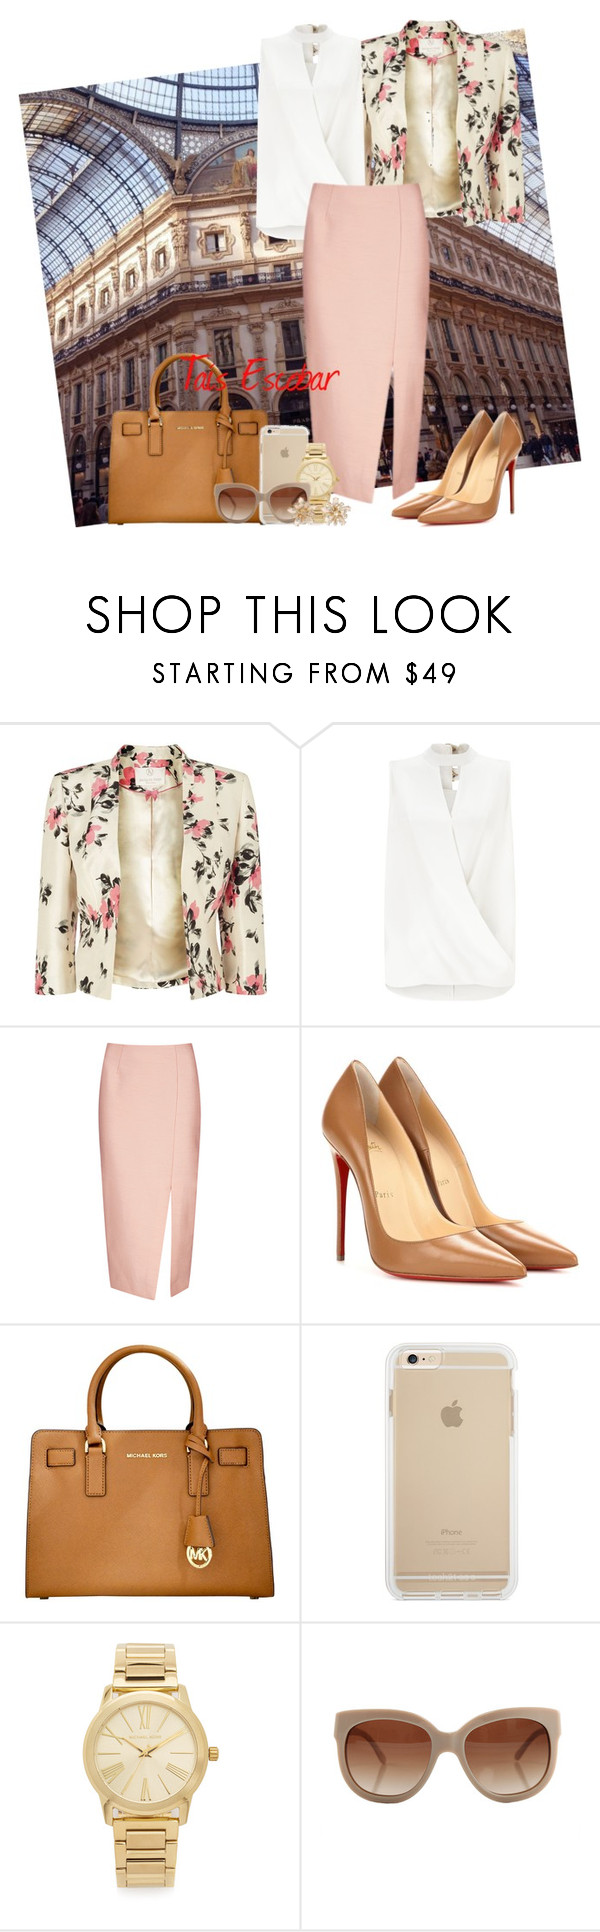 """""""Monday & Flowers on town """" by tais-escobar ❤ liked on Polyvore featuring Jacques Vert, Miss Selfridge, C/MEO COLLECTIVE, Christian Louboutin, Michael Kors and STELLA McCARTNEY"""